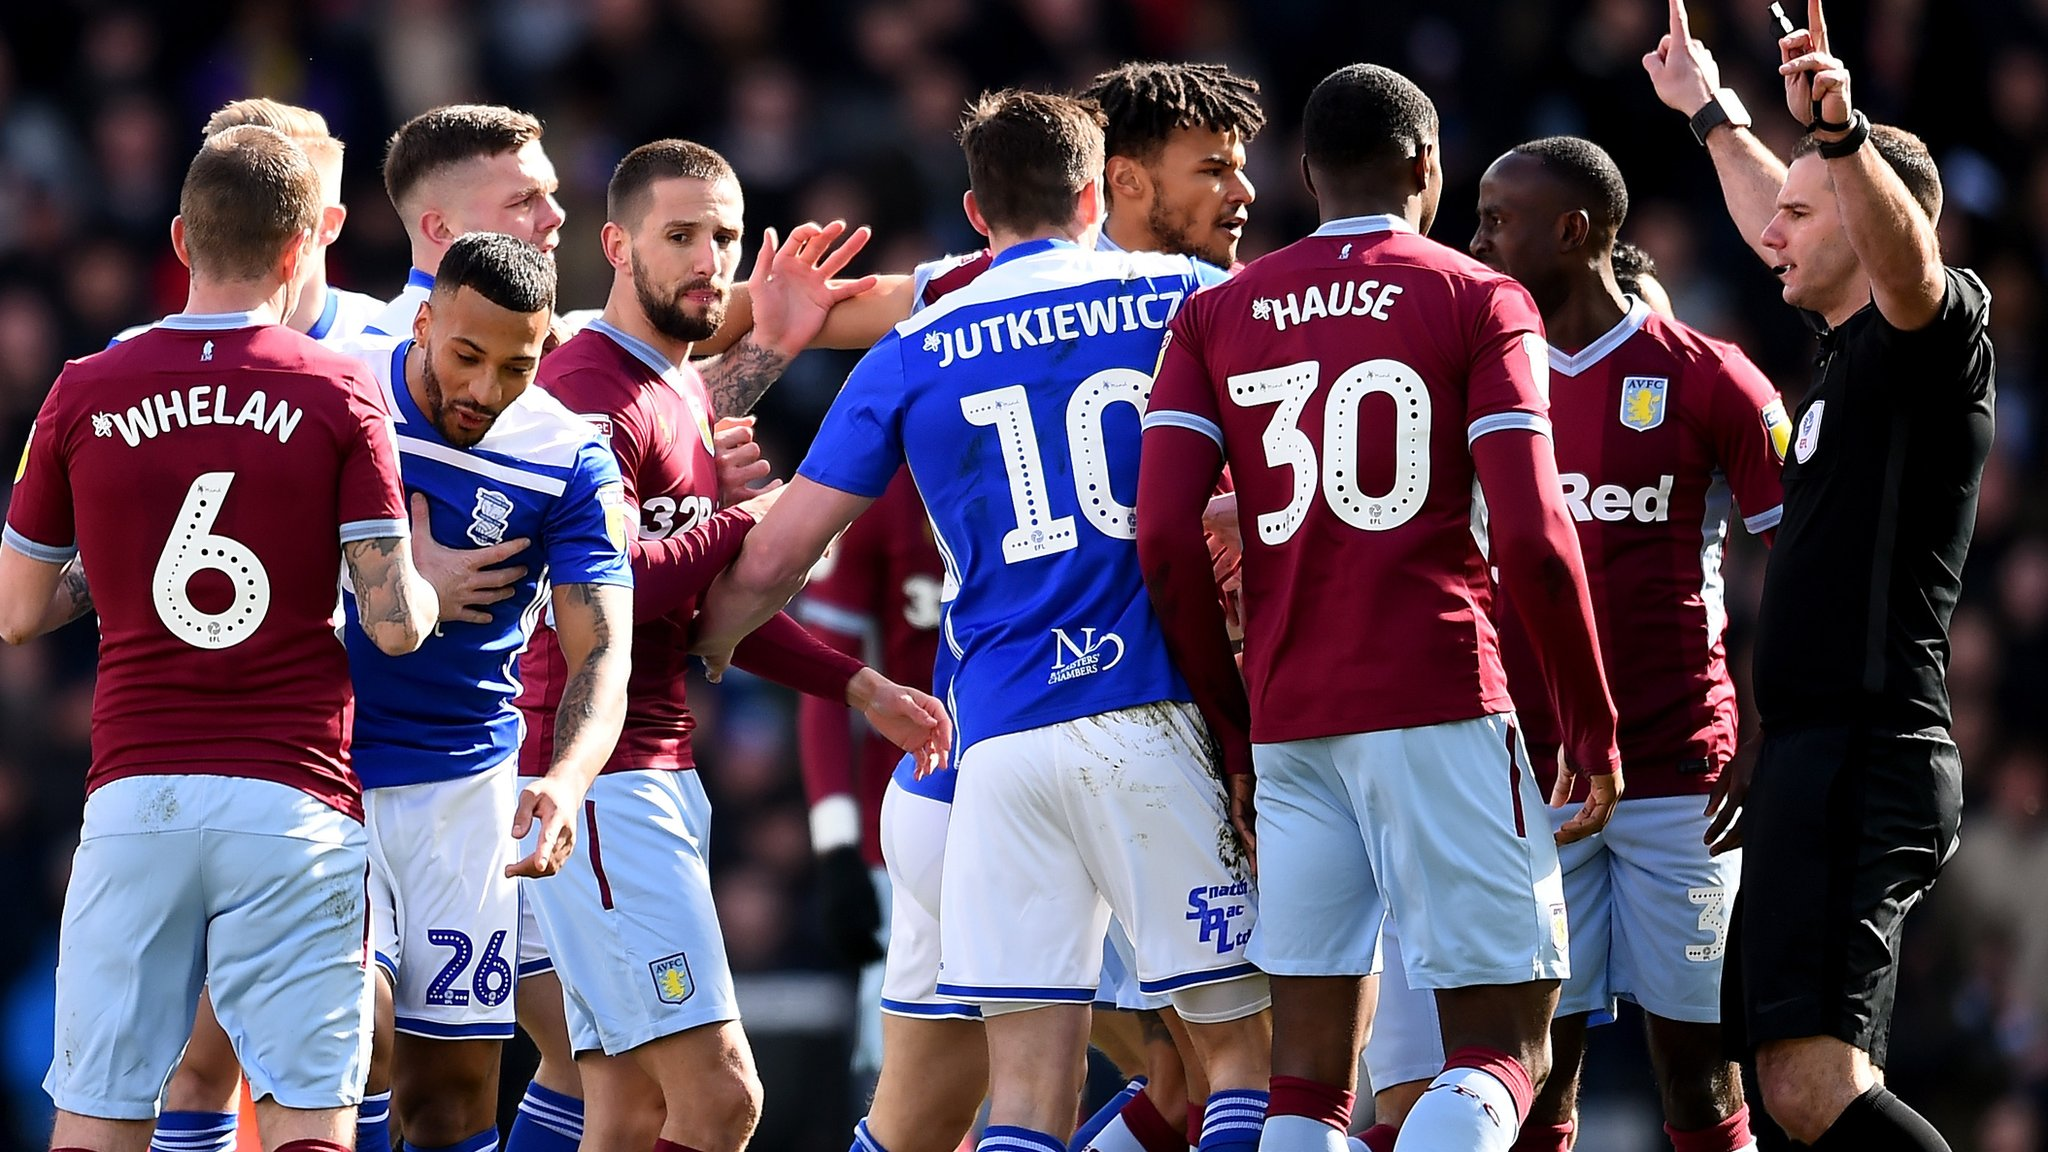 Birmingham City & Aston Villa fined £5,000 for failing to control players in Second City derby